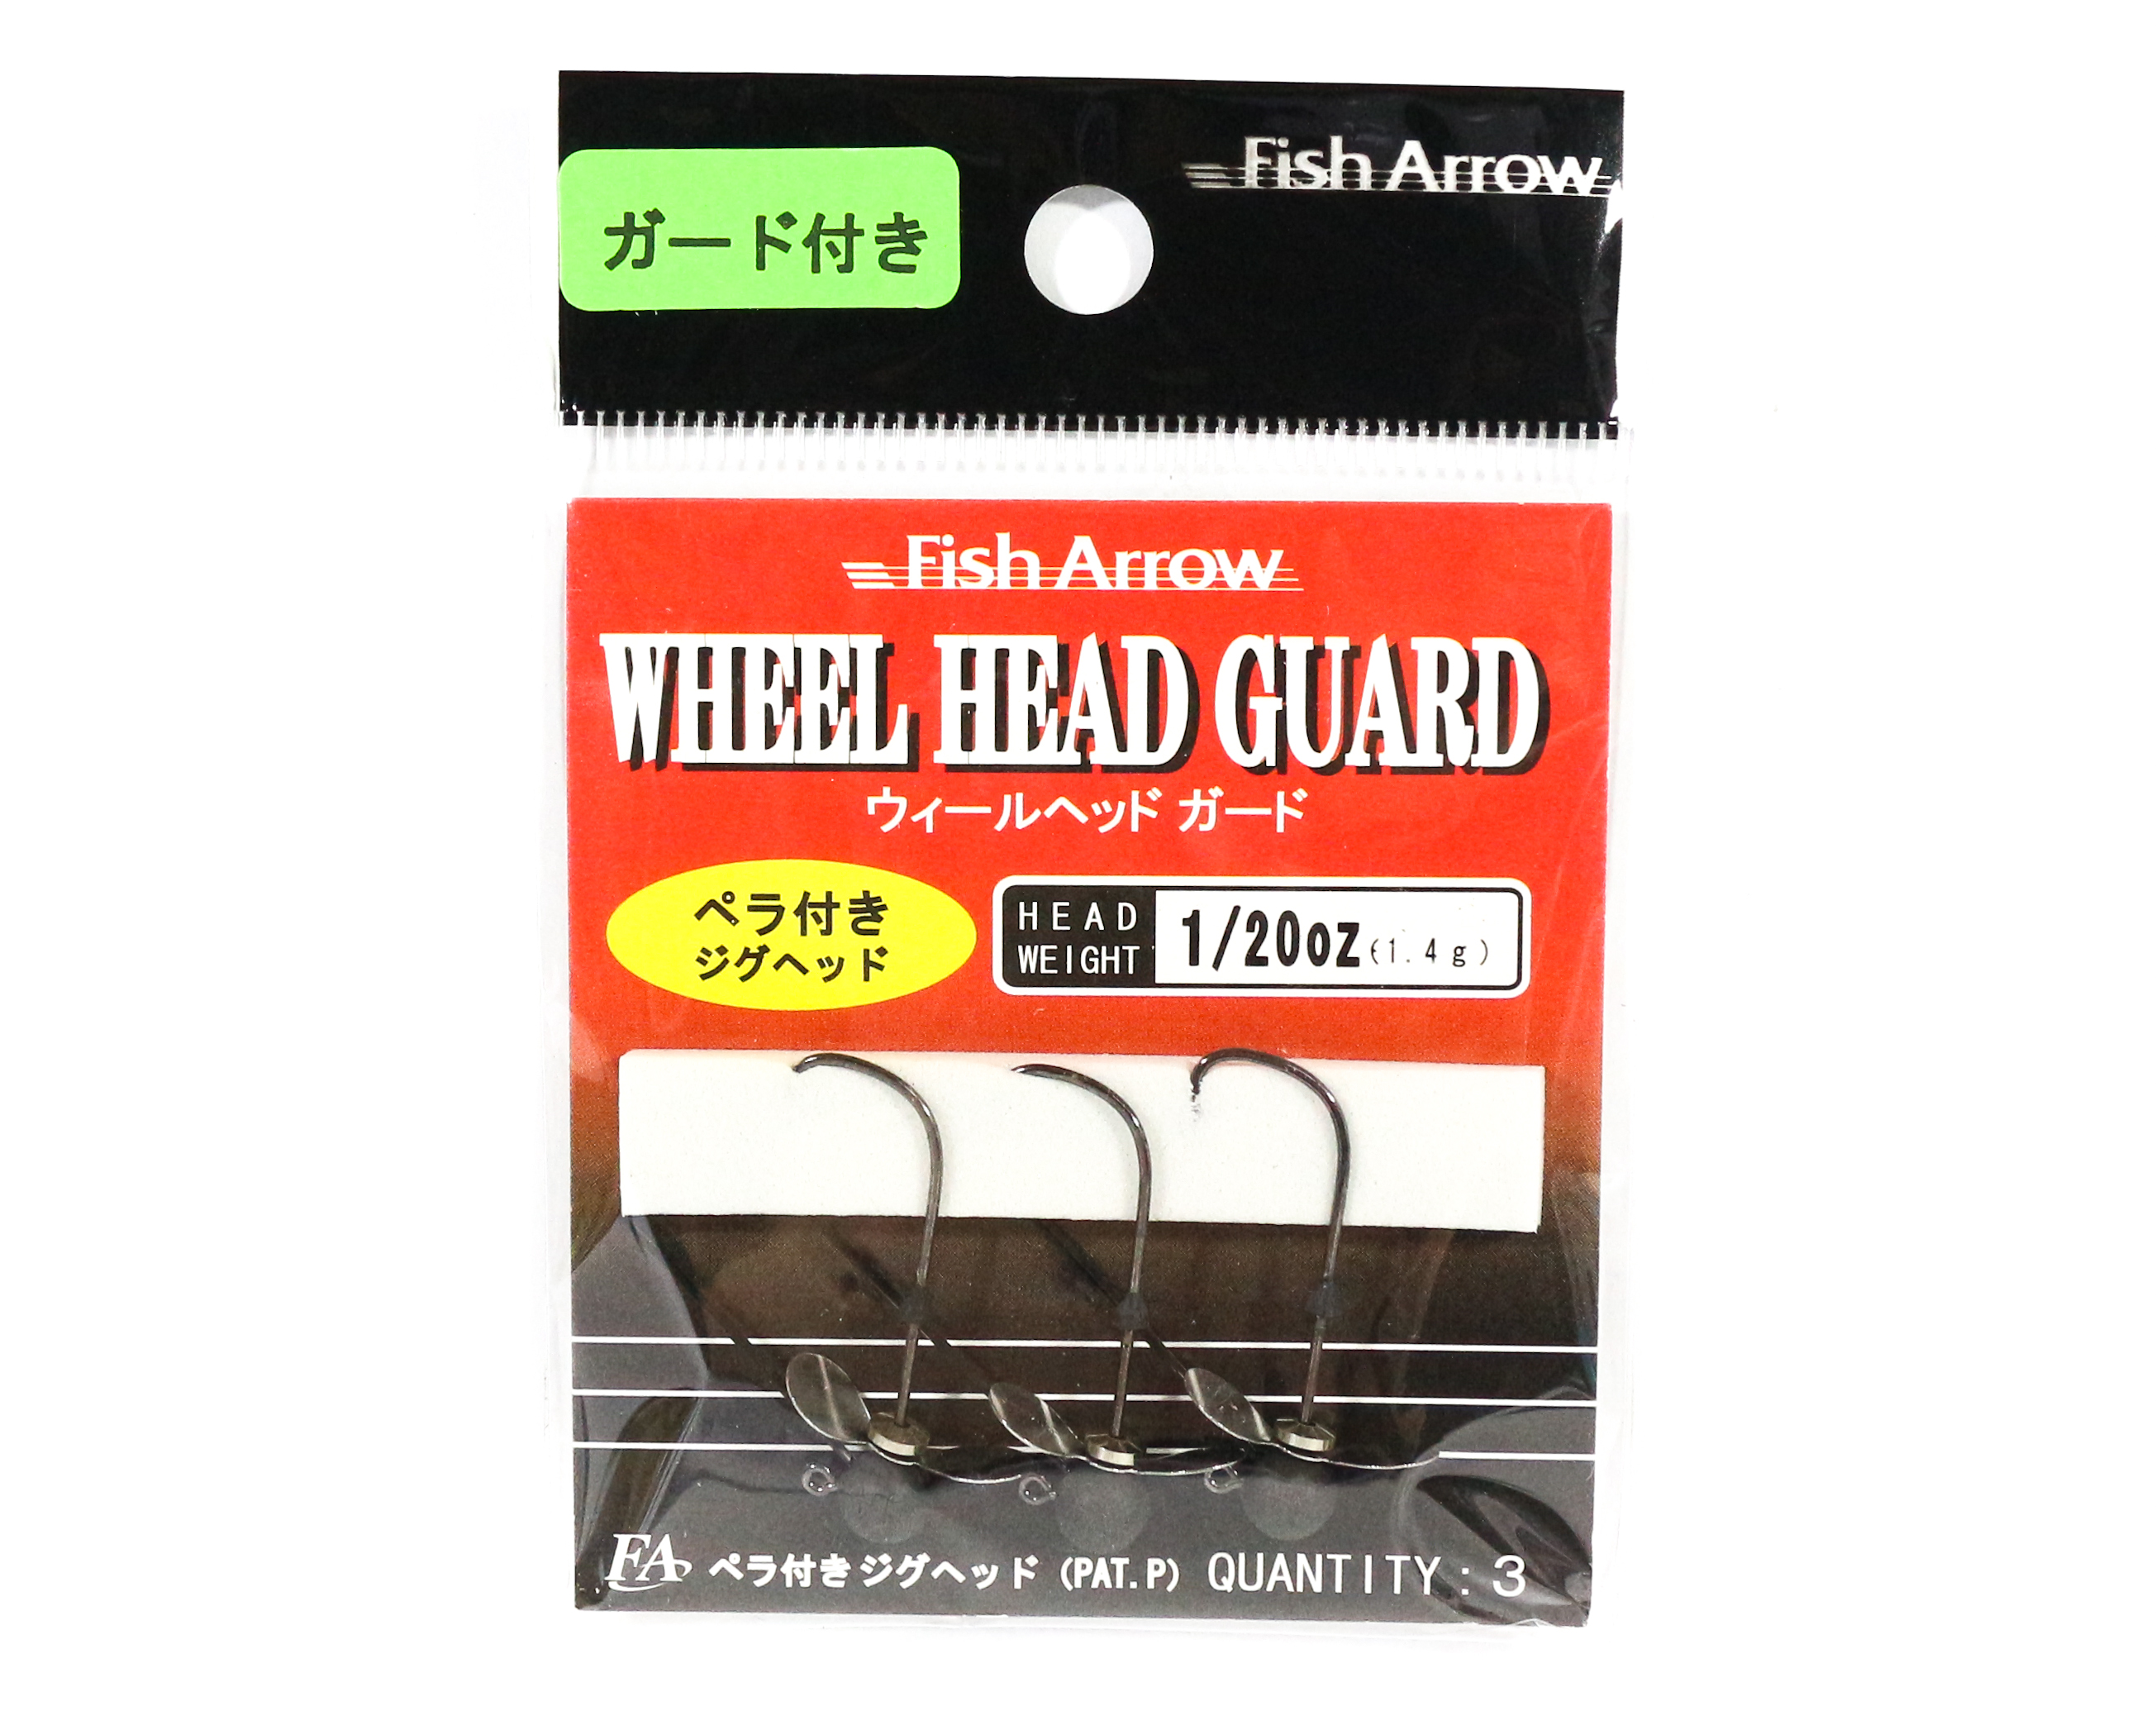 Fish Arrow Jig Head Wheel Head with Guard 1.4 grams Size 4 3 Pc per pack (1956)